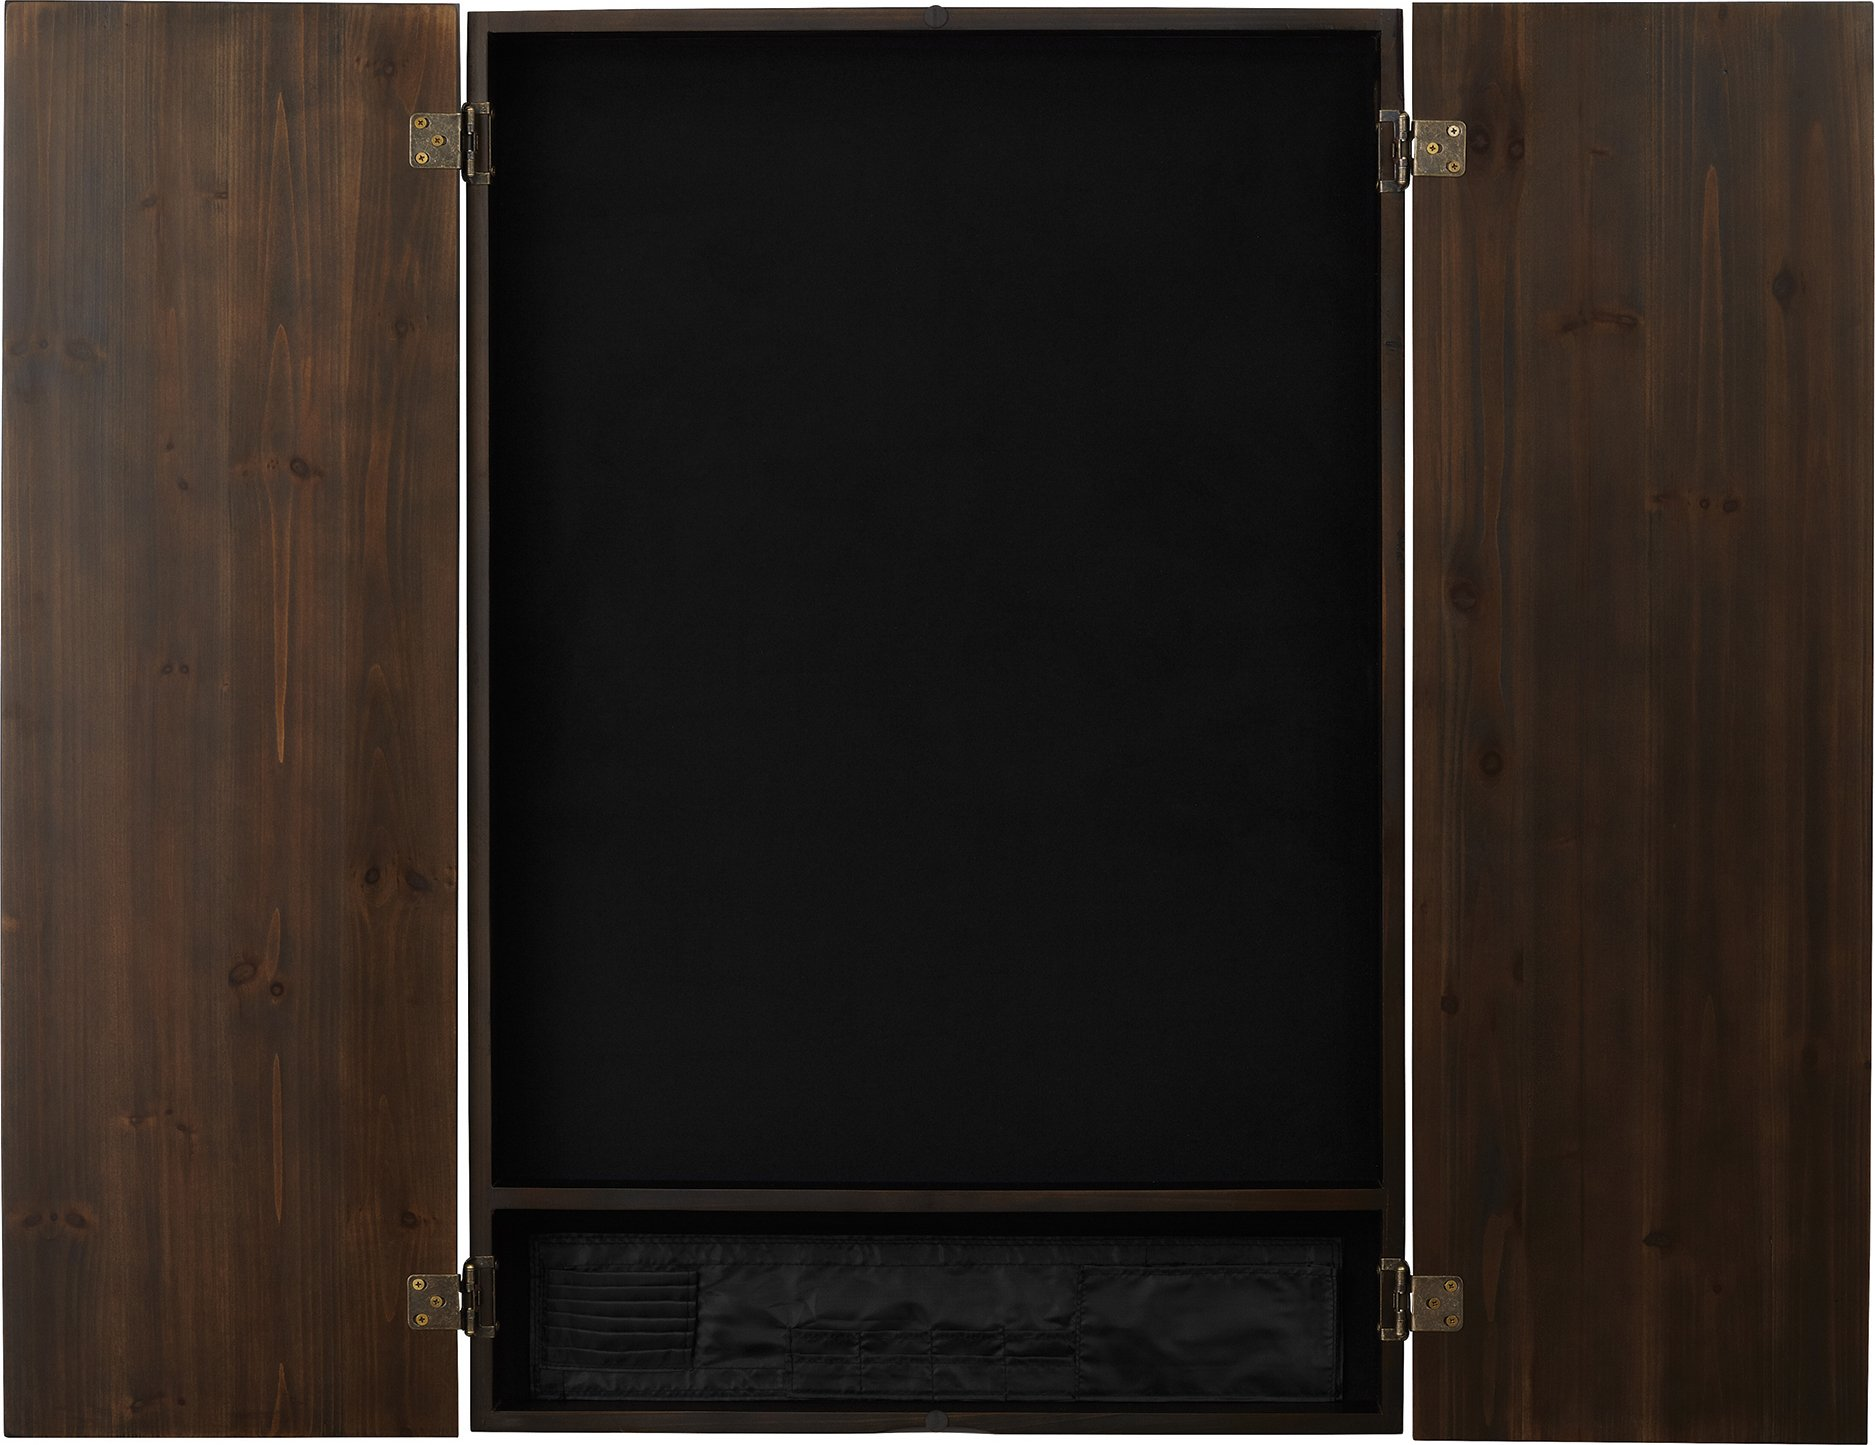 Viper Metropolitan Solid Wood Electronic Soft Tip Dartboard Cabinet: Cabinet Only (No Dartboard), Espresso Finish